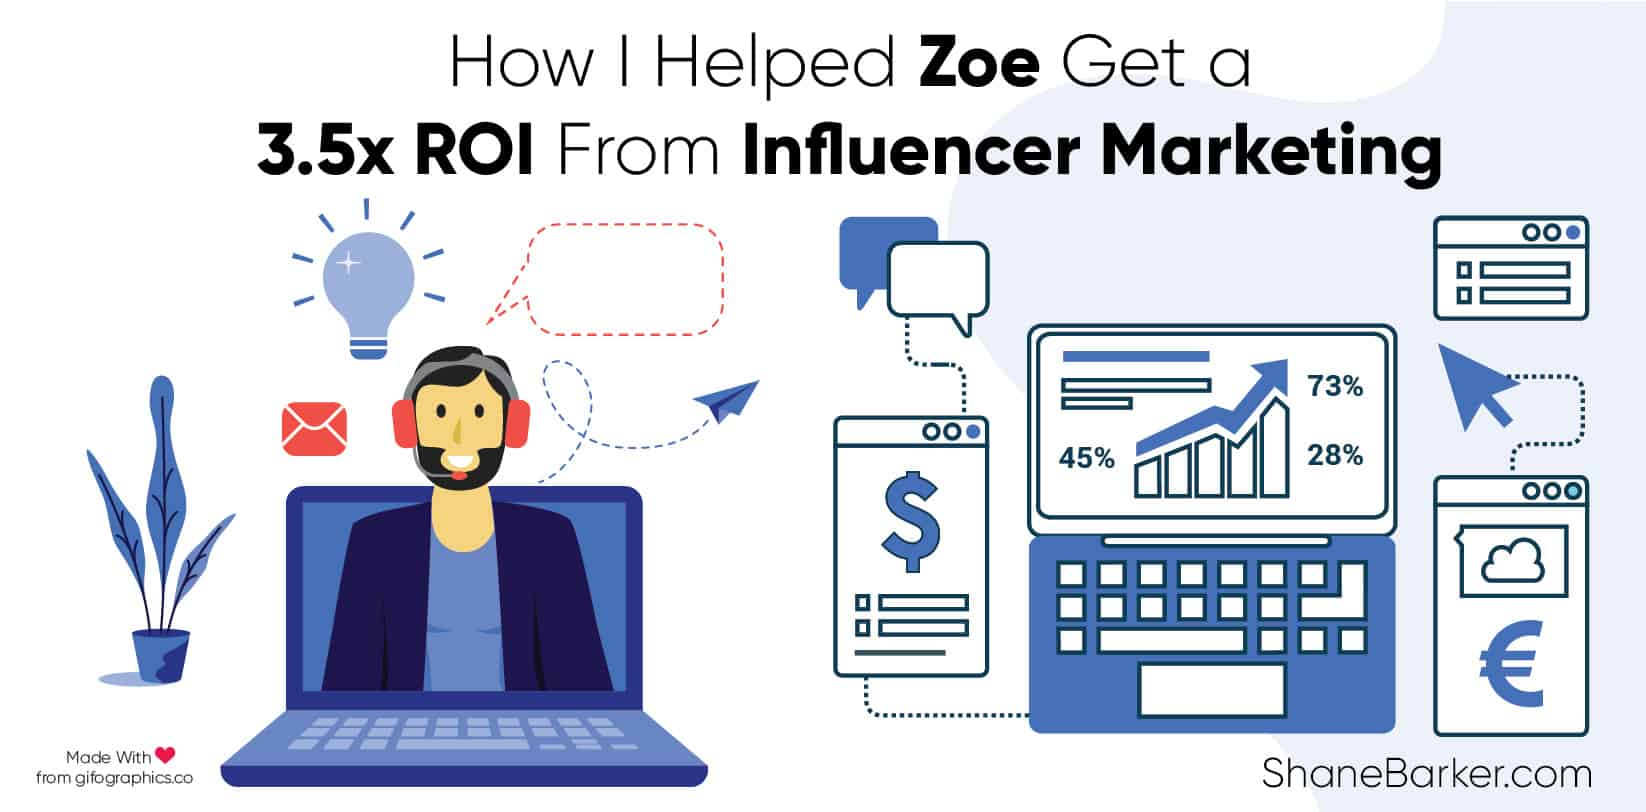 How I Helped Zoe Get a 3.5x ROI From Influencer Marketing_blog